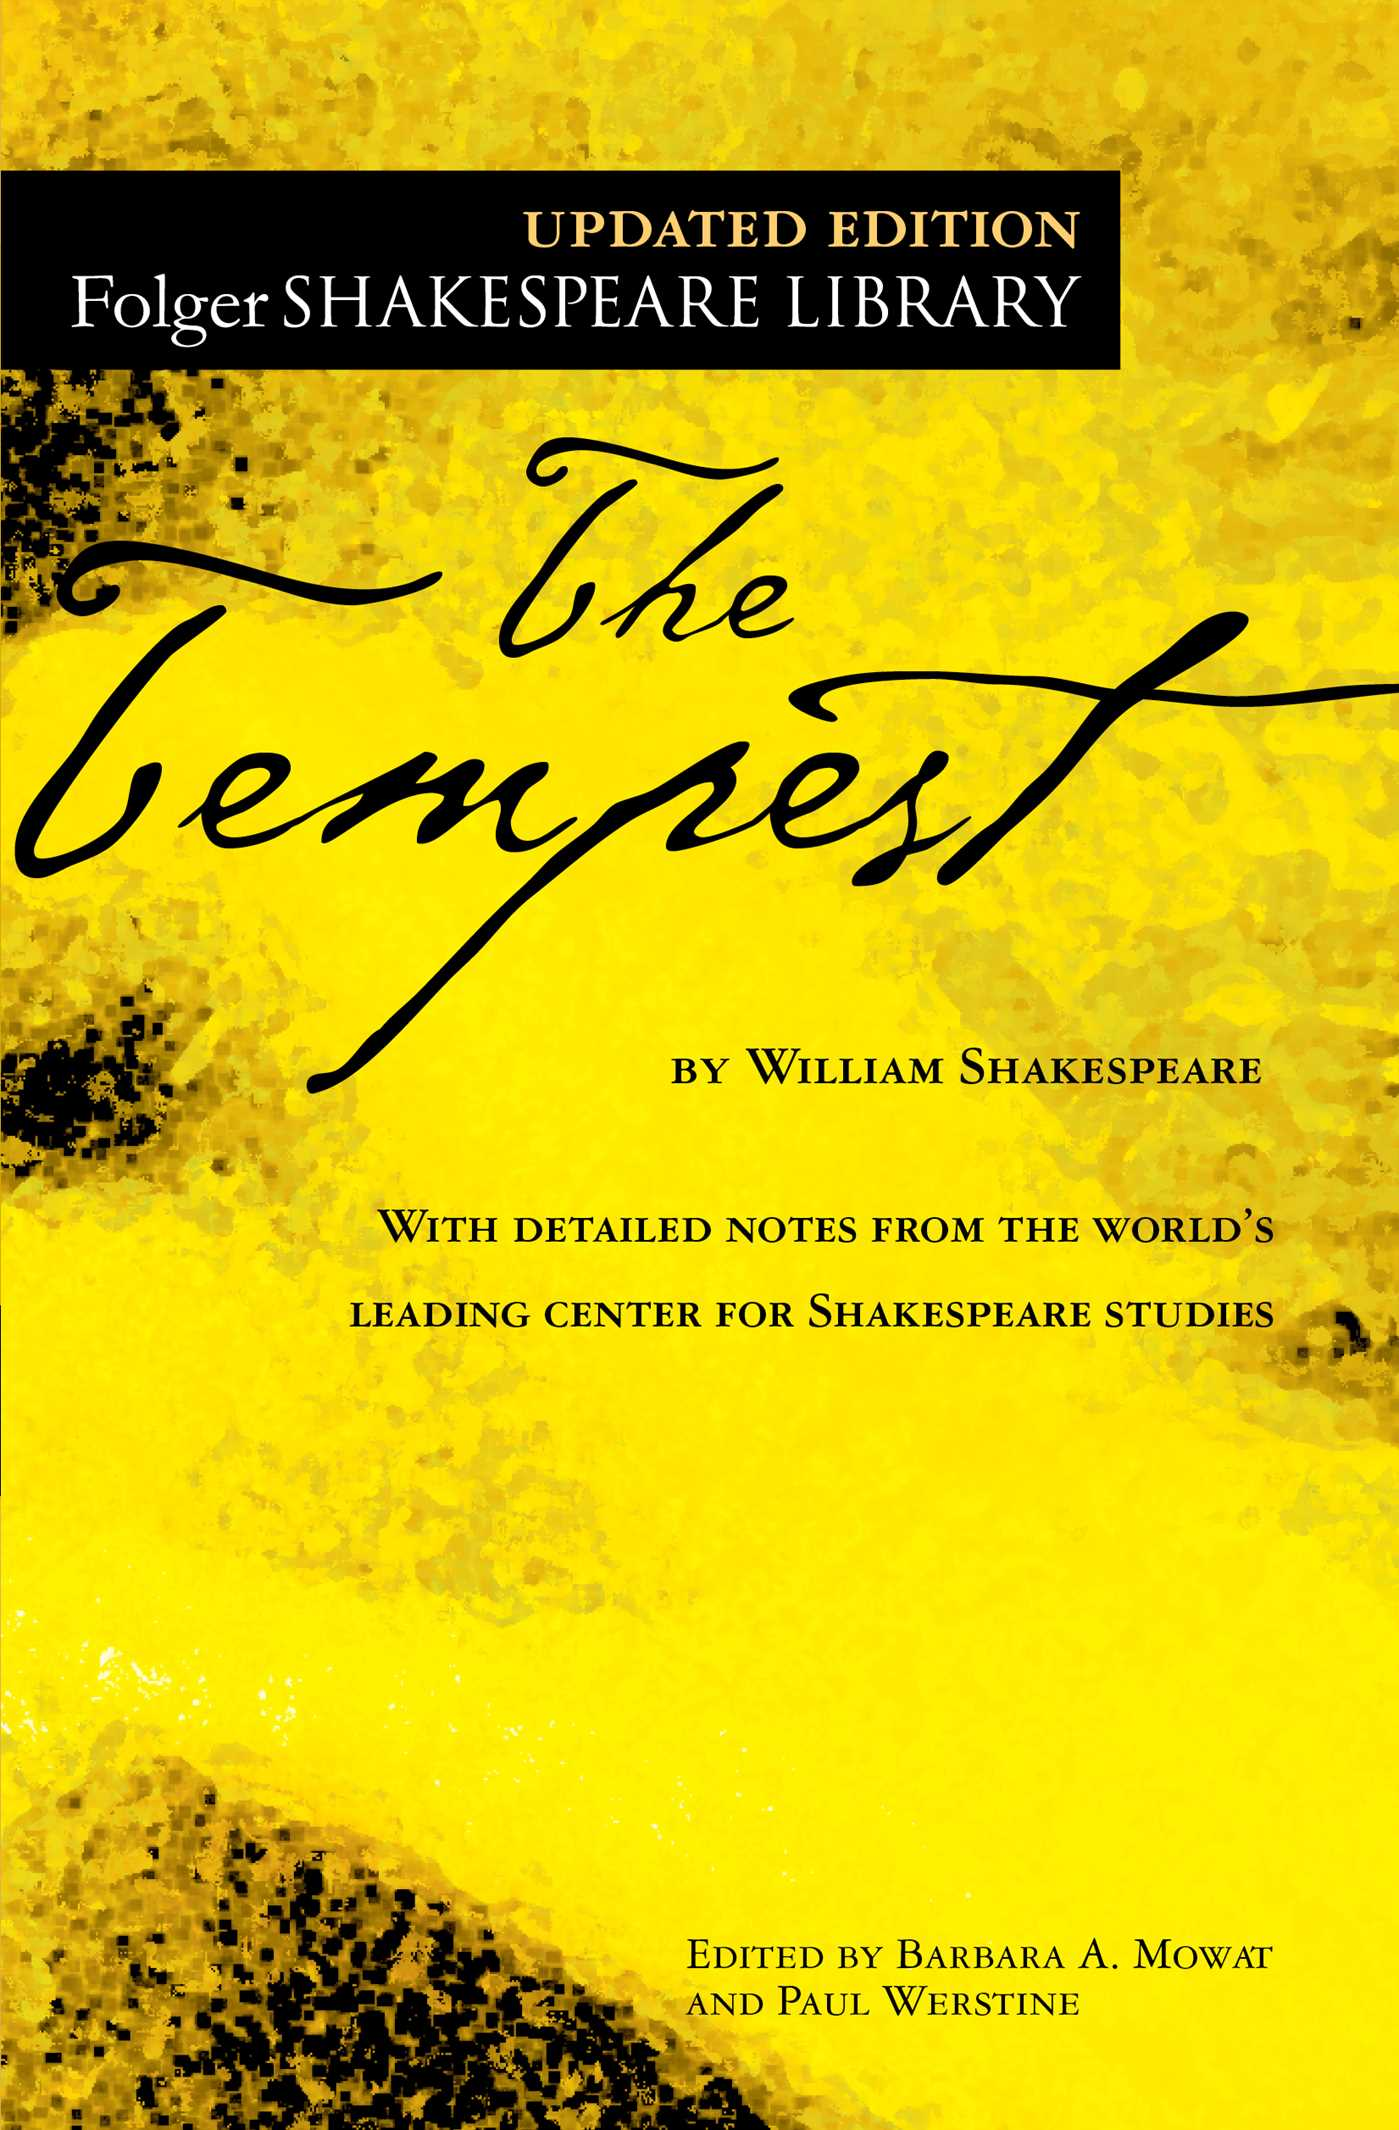 life of william shakespeare essay hamlet top ideas about macbeth  the tempest book by william shakespeare dr barbara a mowat the tempest 9781501130014 hr